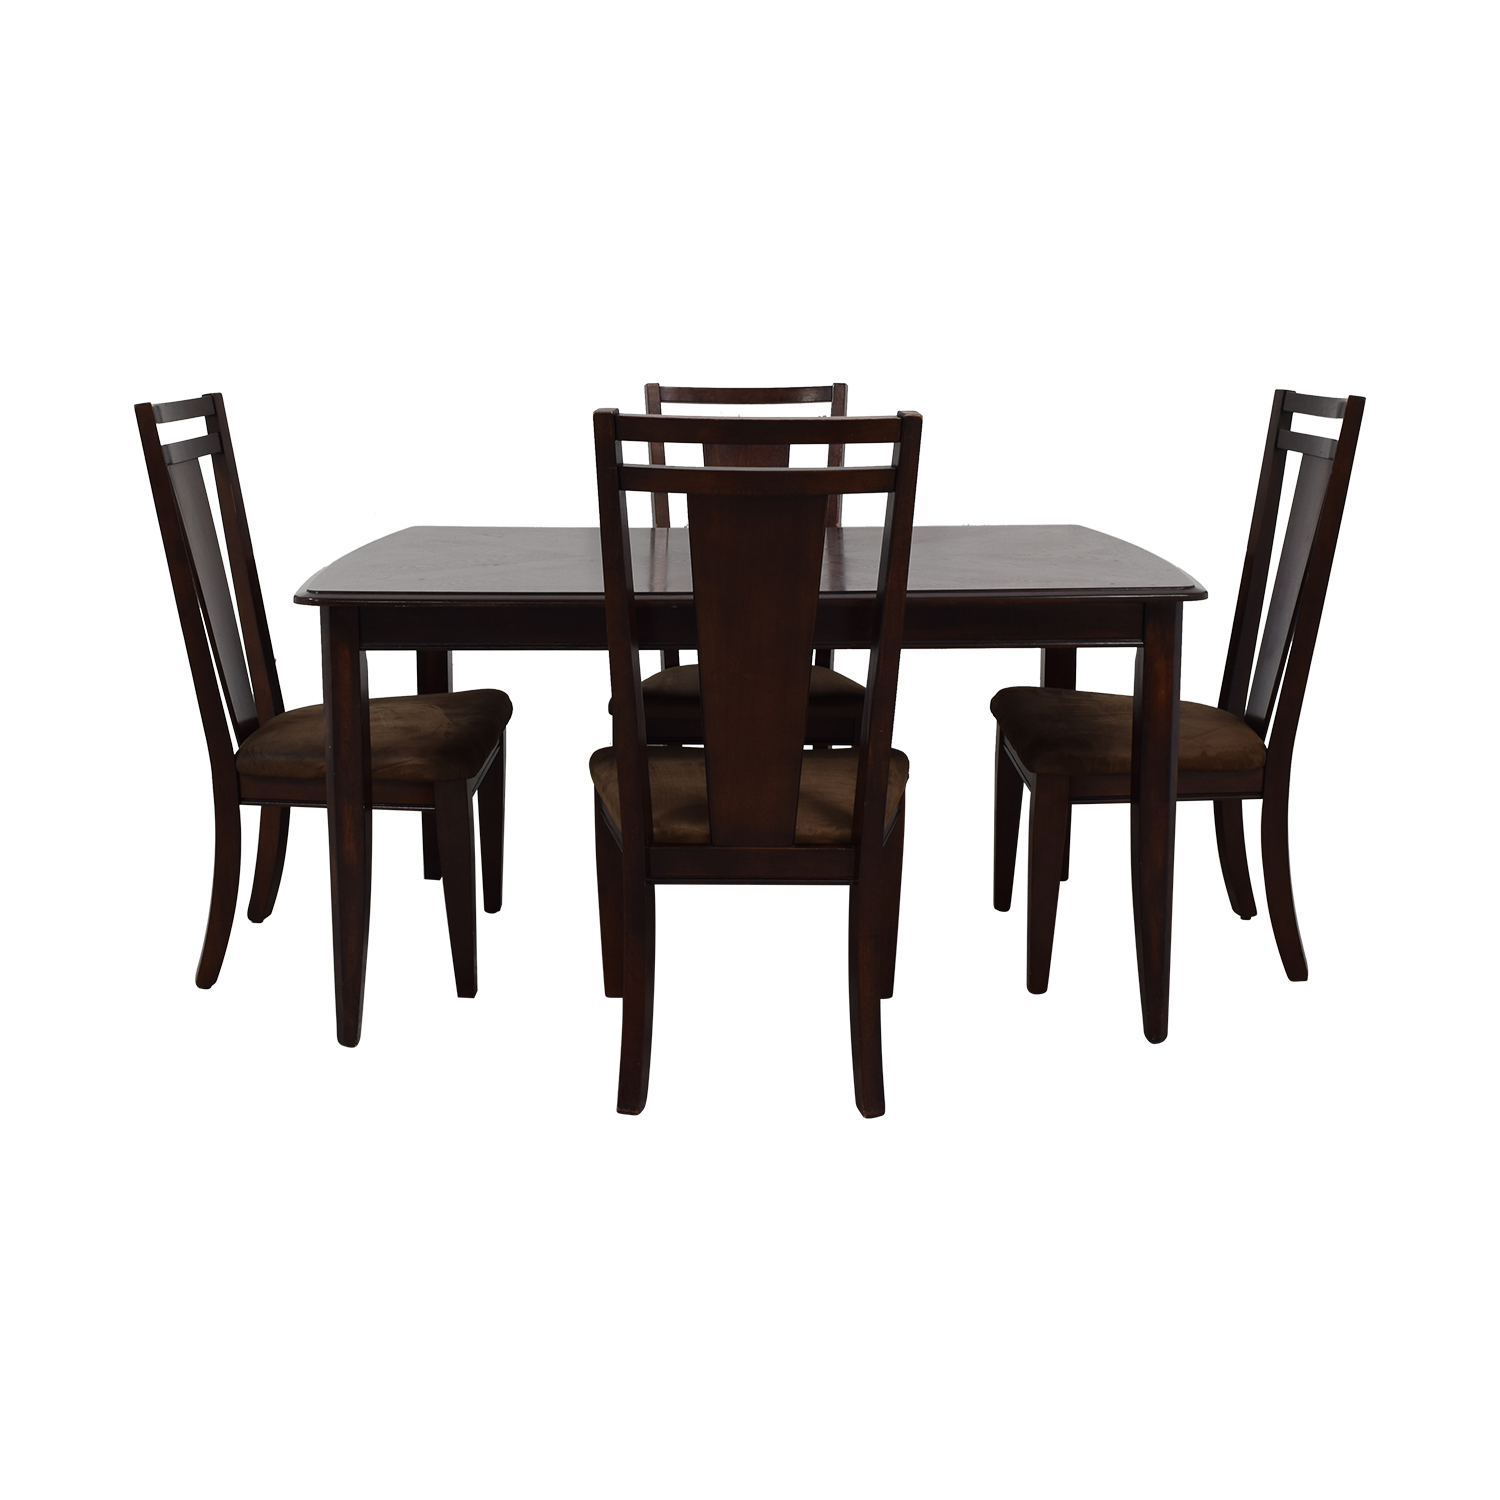 Raymour & Flanigan Raymour & Flanigan Extendable Dining Set nj